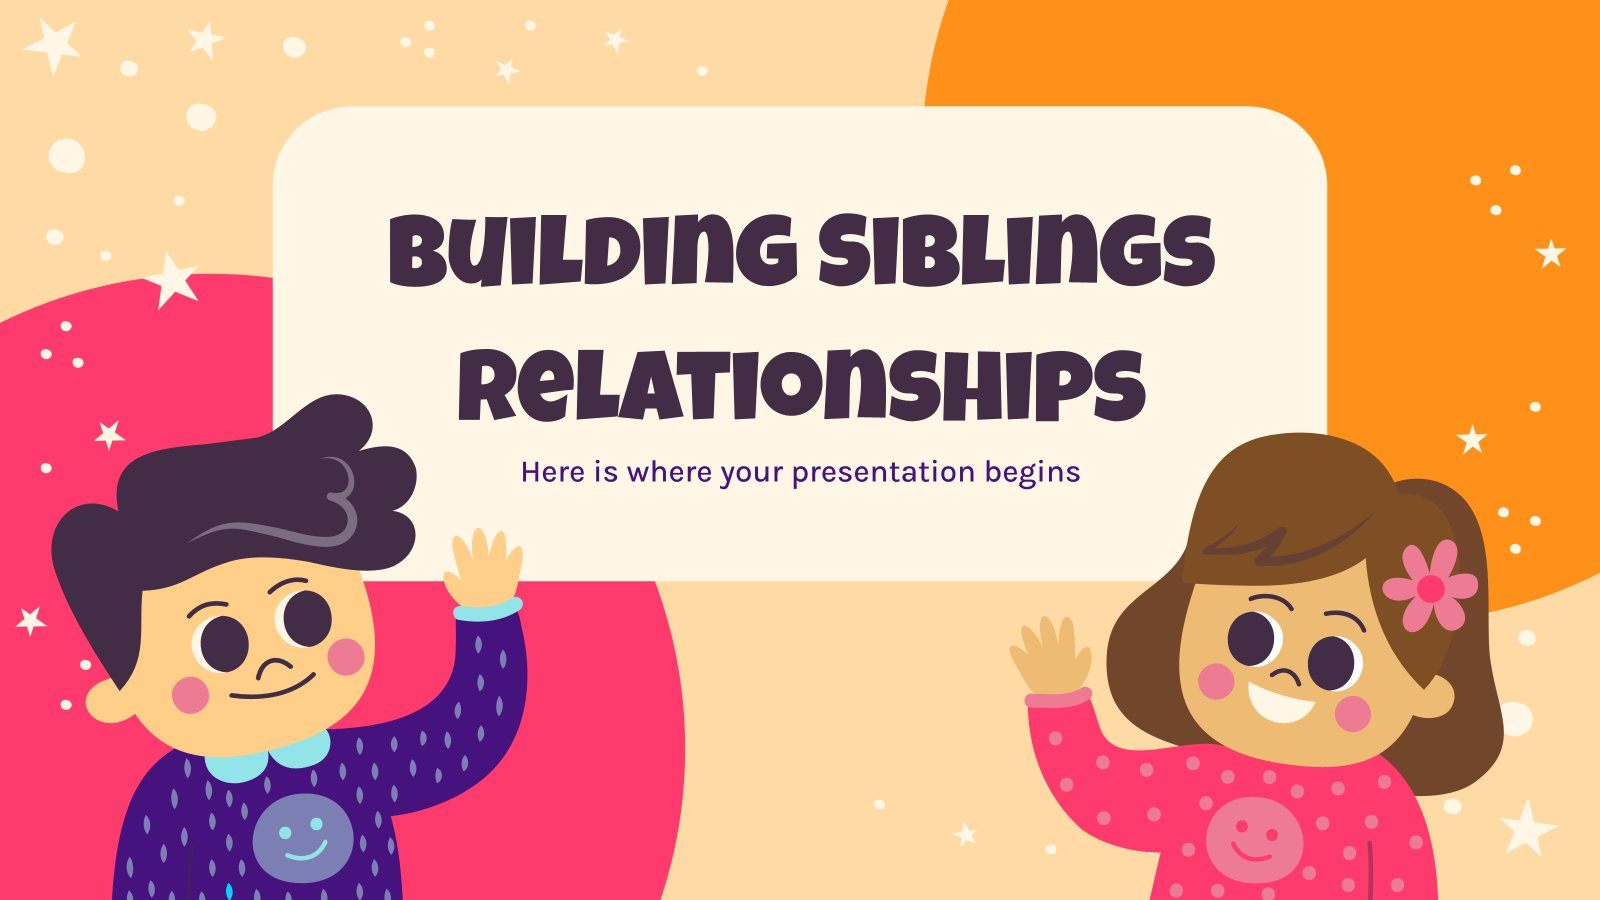 Building Siblings Relationships presentation template